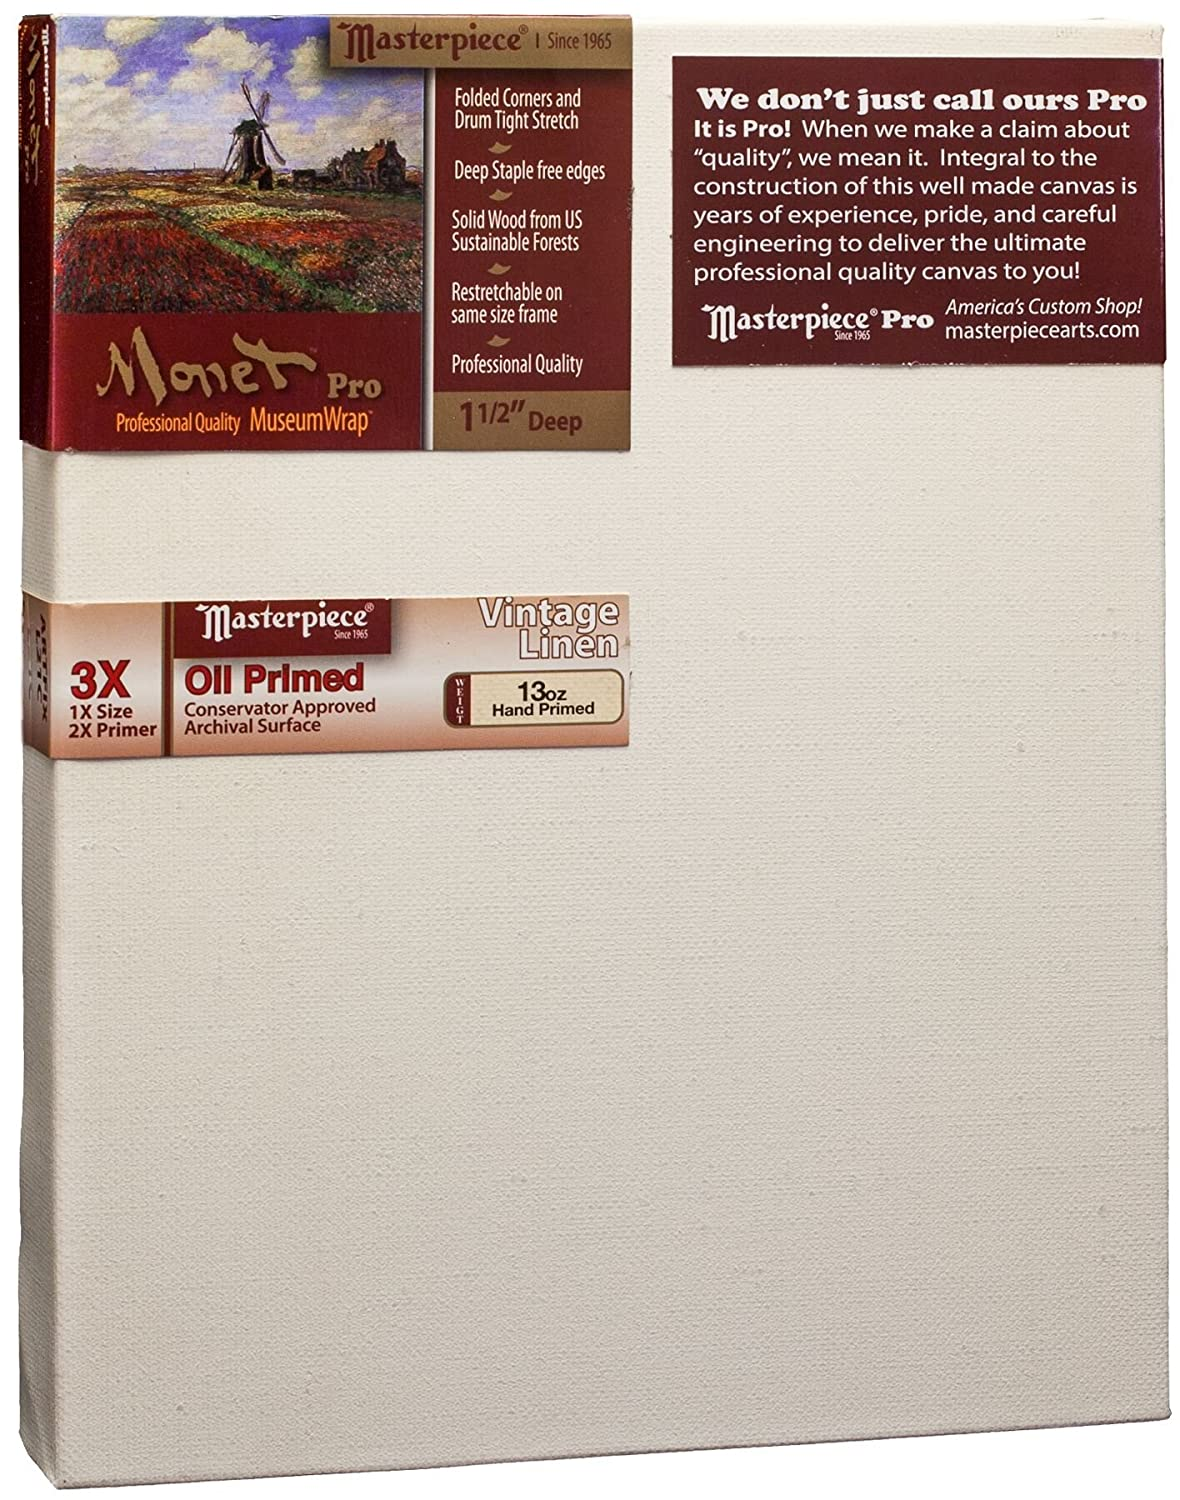 Masterpiece Artist Canvas MO-0407 Monet Pro 1-1/2' Deep, 4' x 7', Linen 13.0oz - 3X - Vintage Oil Primed